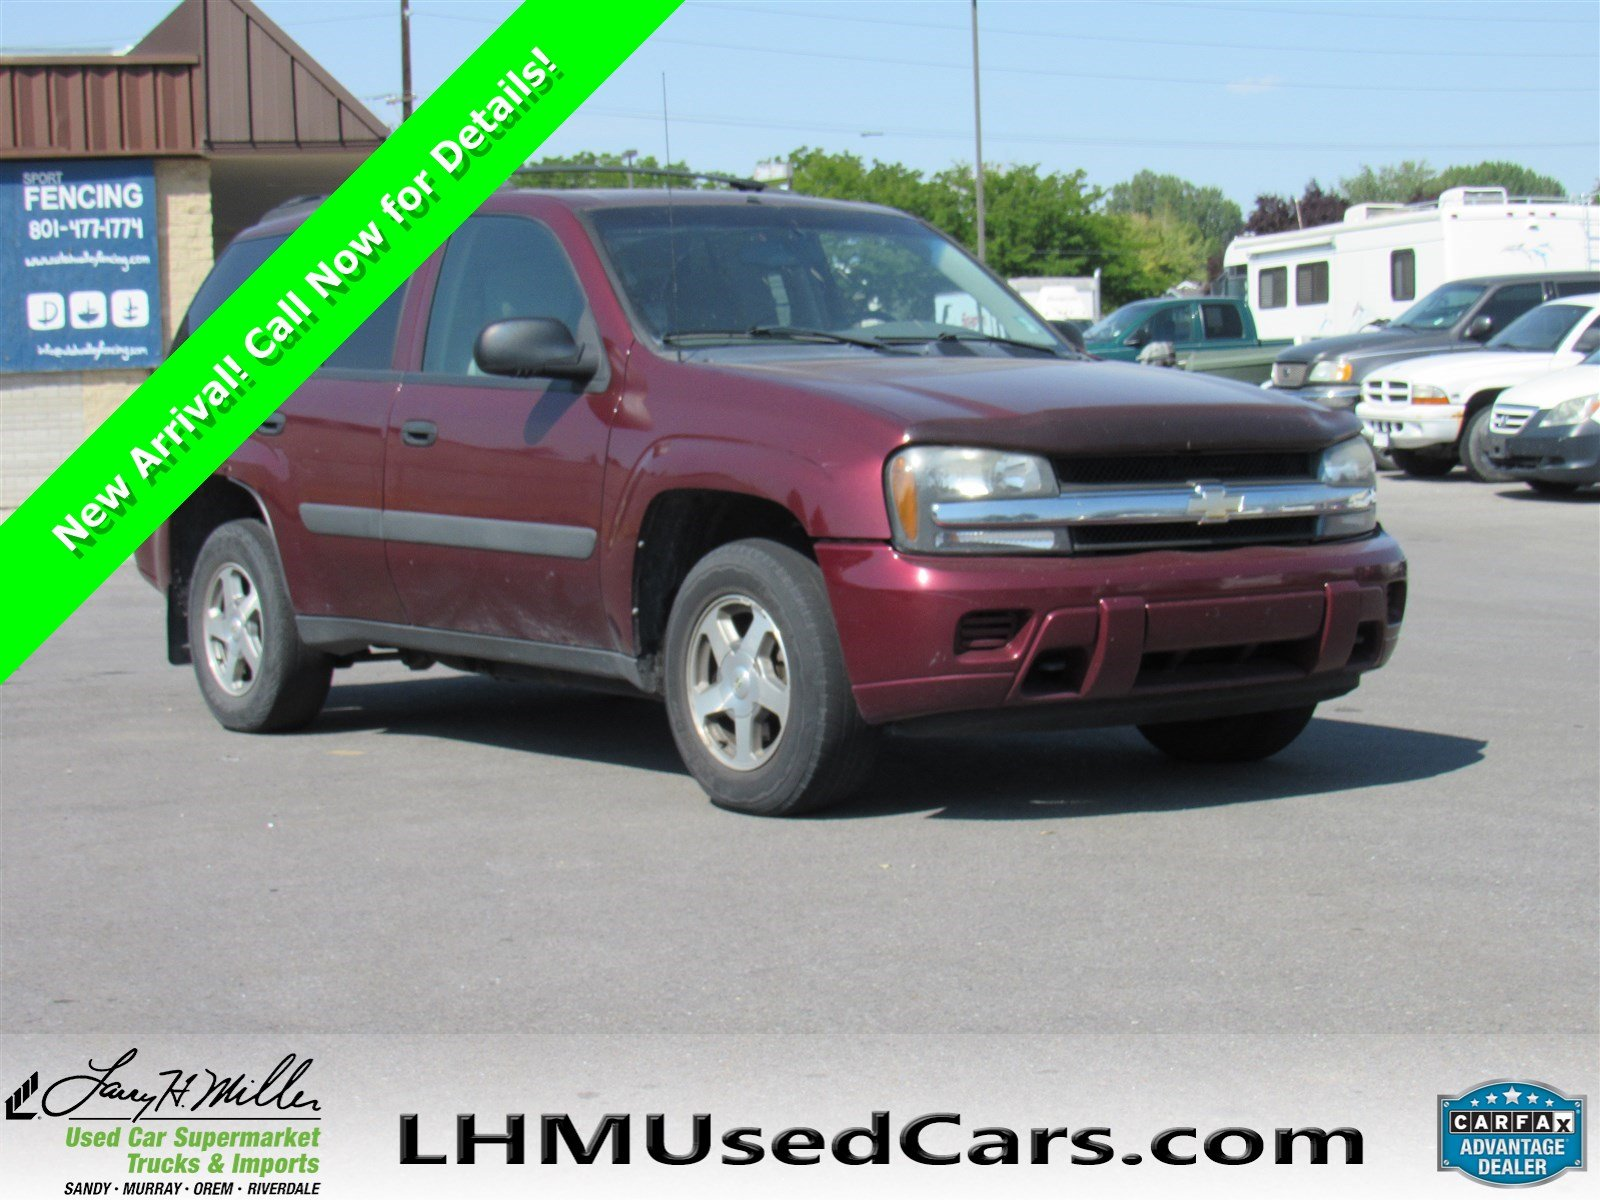 Pre Owned 2005 Chevrolet TrailBlazer LS Sport Utility in Sandy